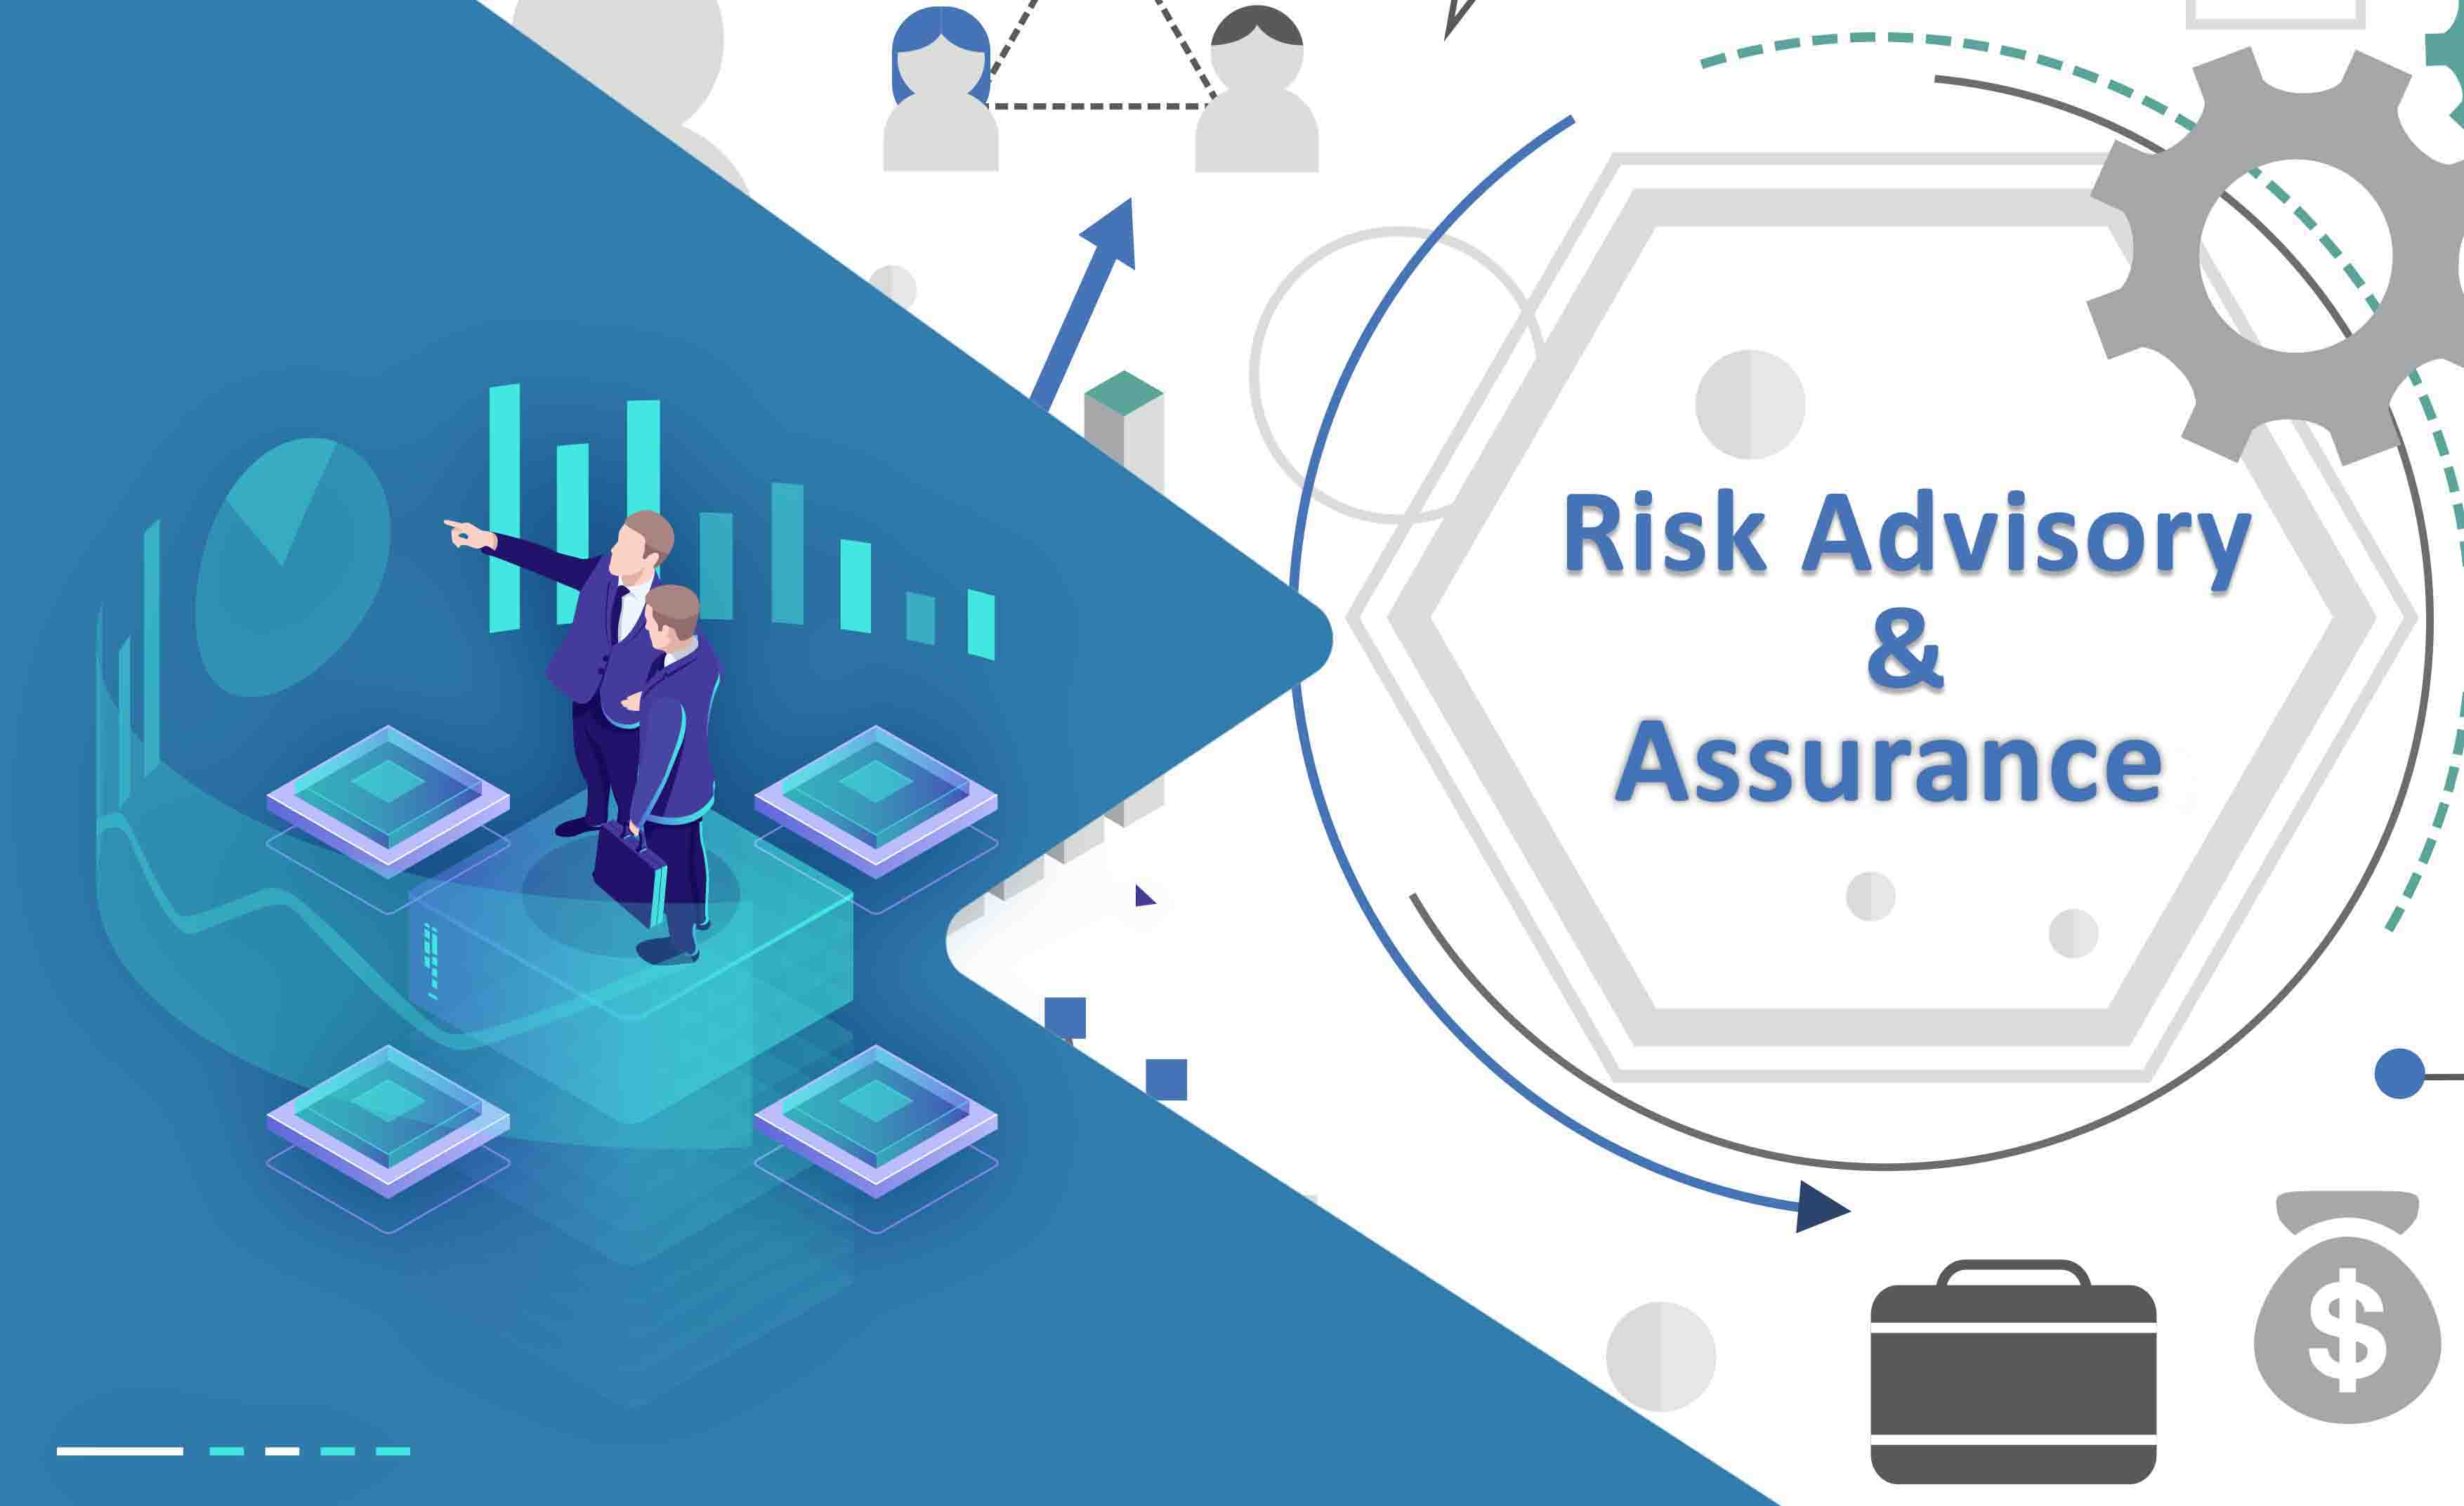 Risk Advisory Services